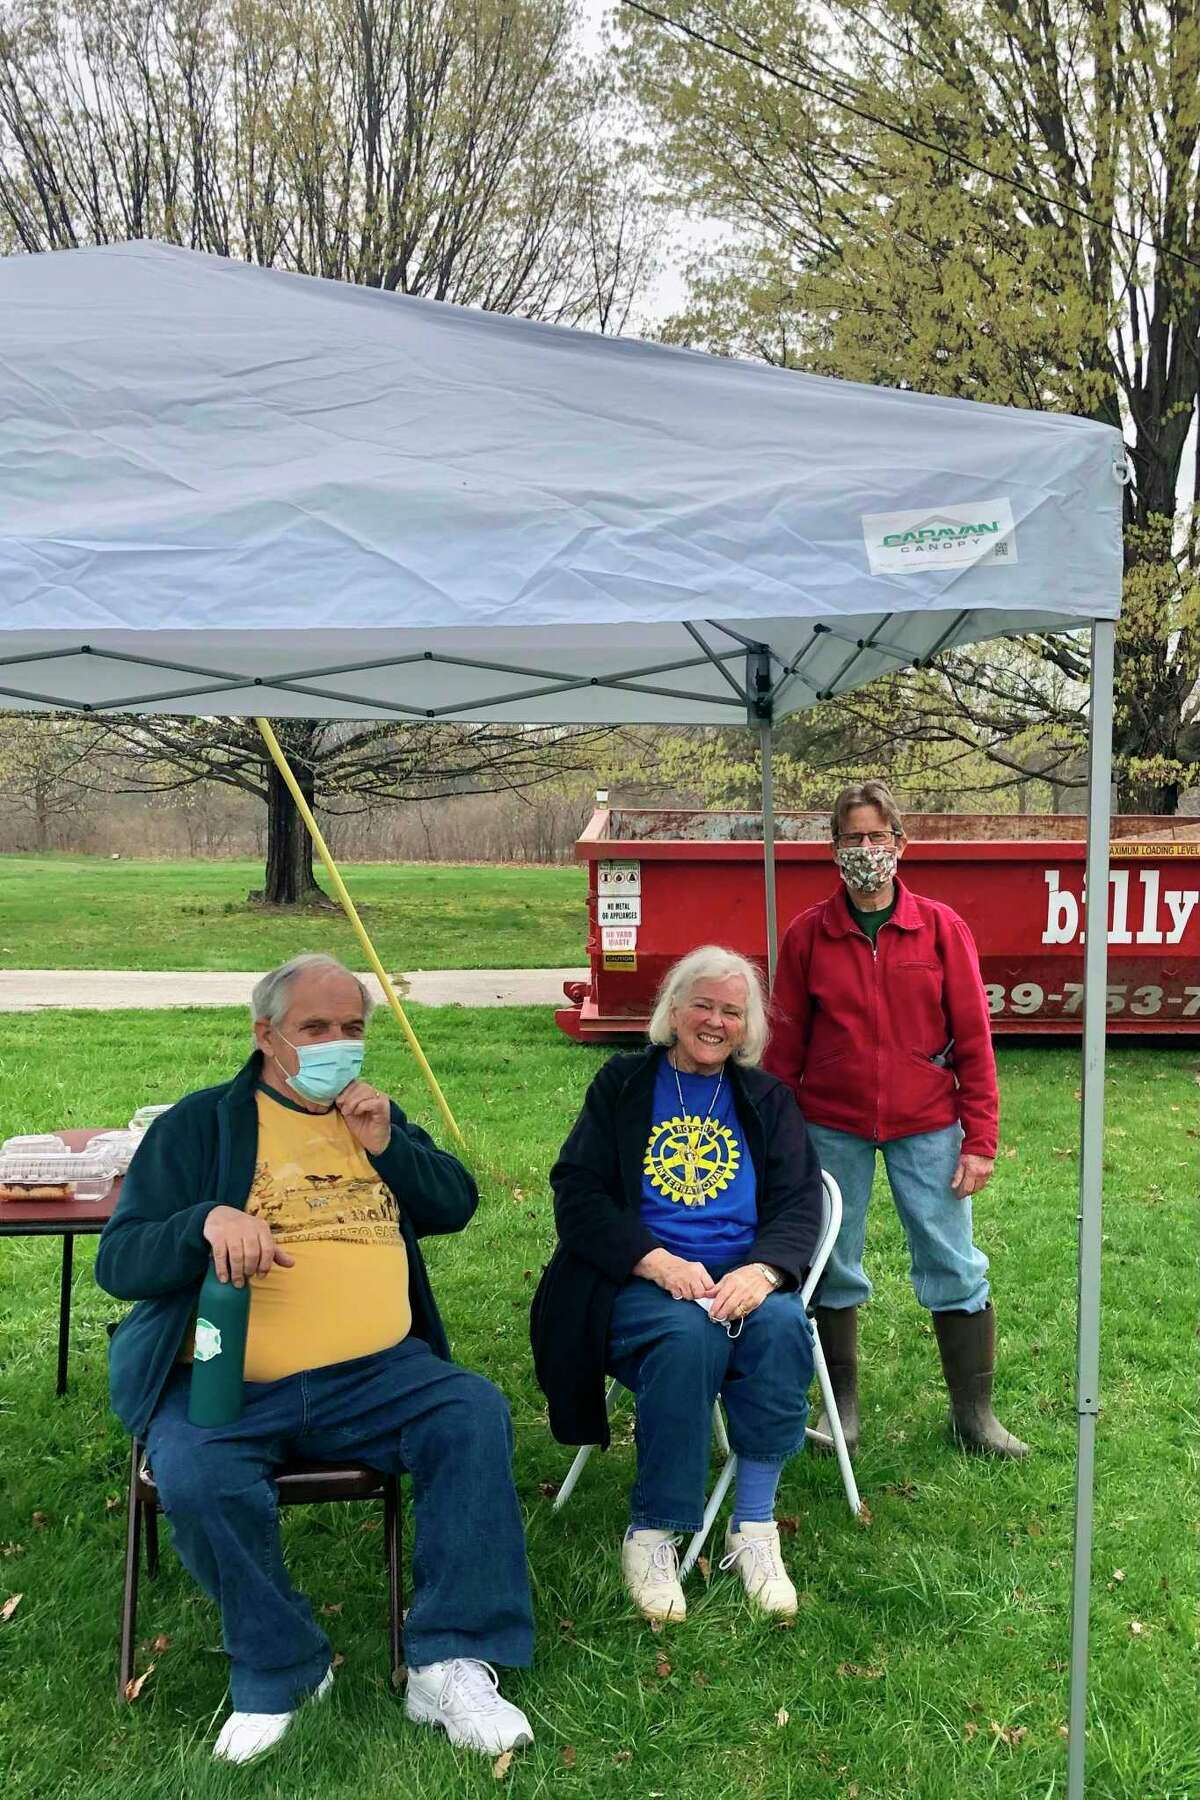 The Rotary Club of Midland (Noon) and The Midland Morning Rotary Club partnered with Little Forks Conservancy to tackle a cleanup project that was on a property heavily affected by the May 2020 dam failures. (Photo provided)